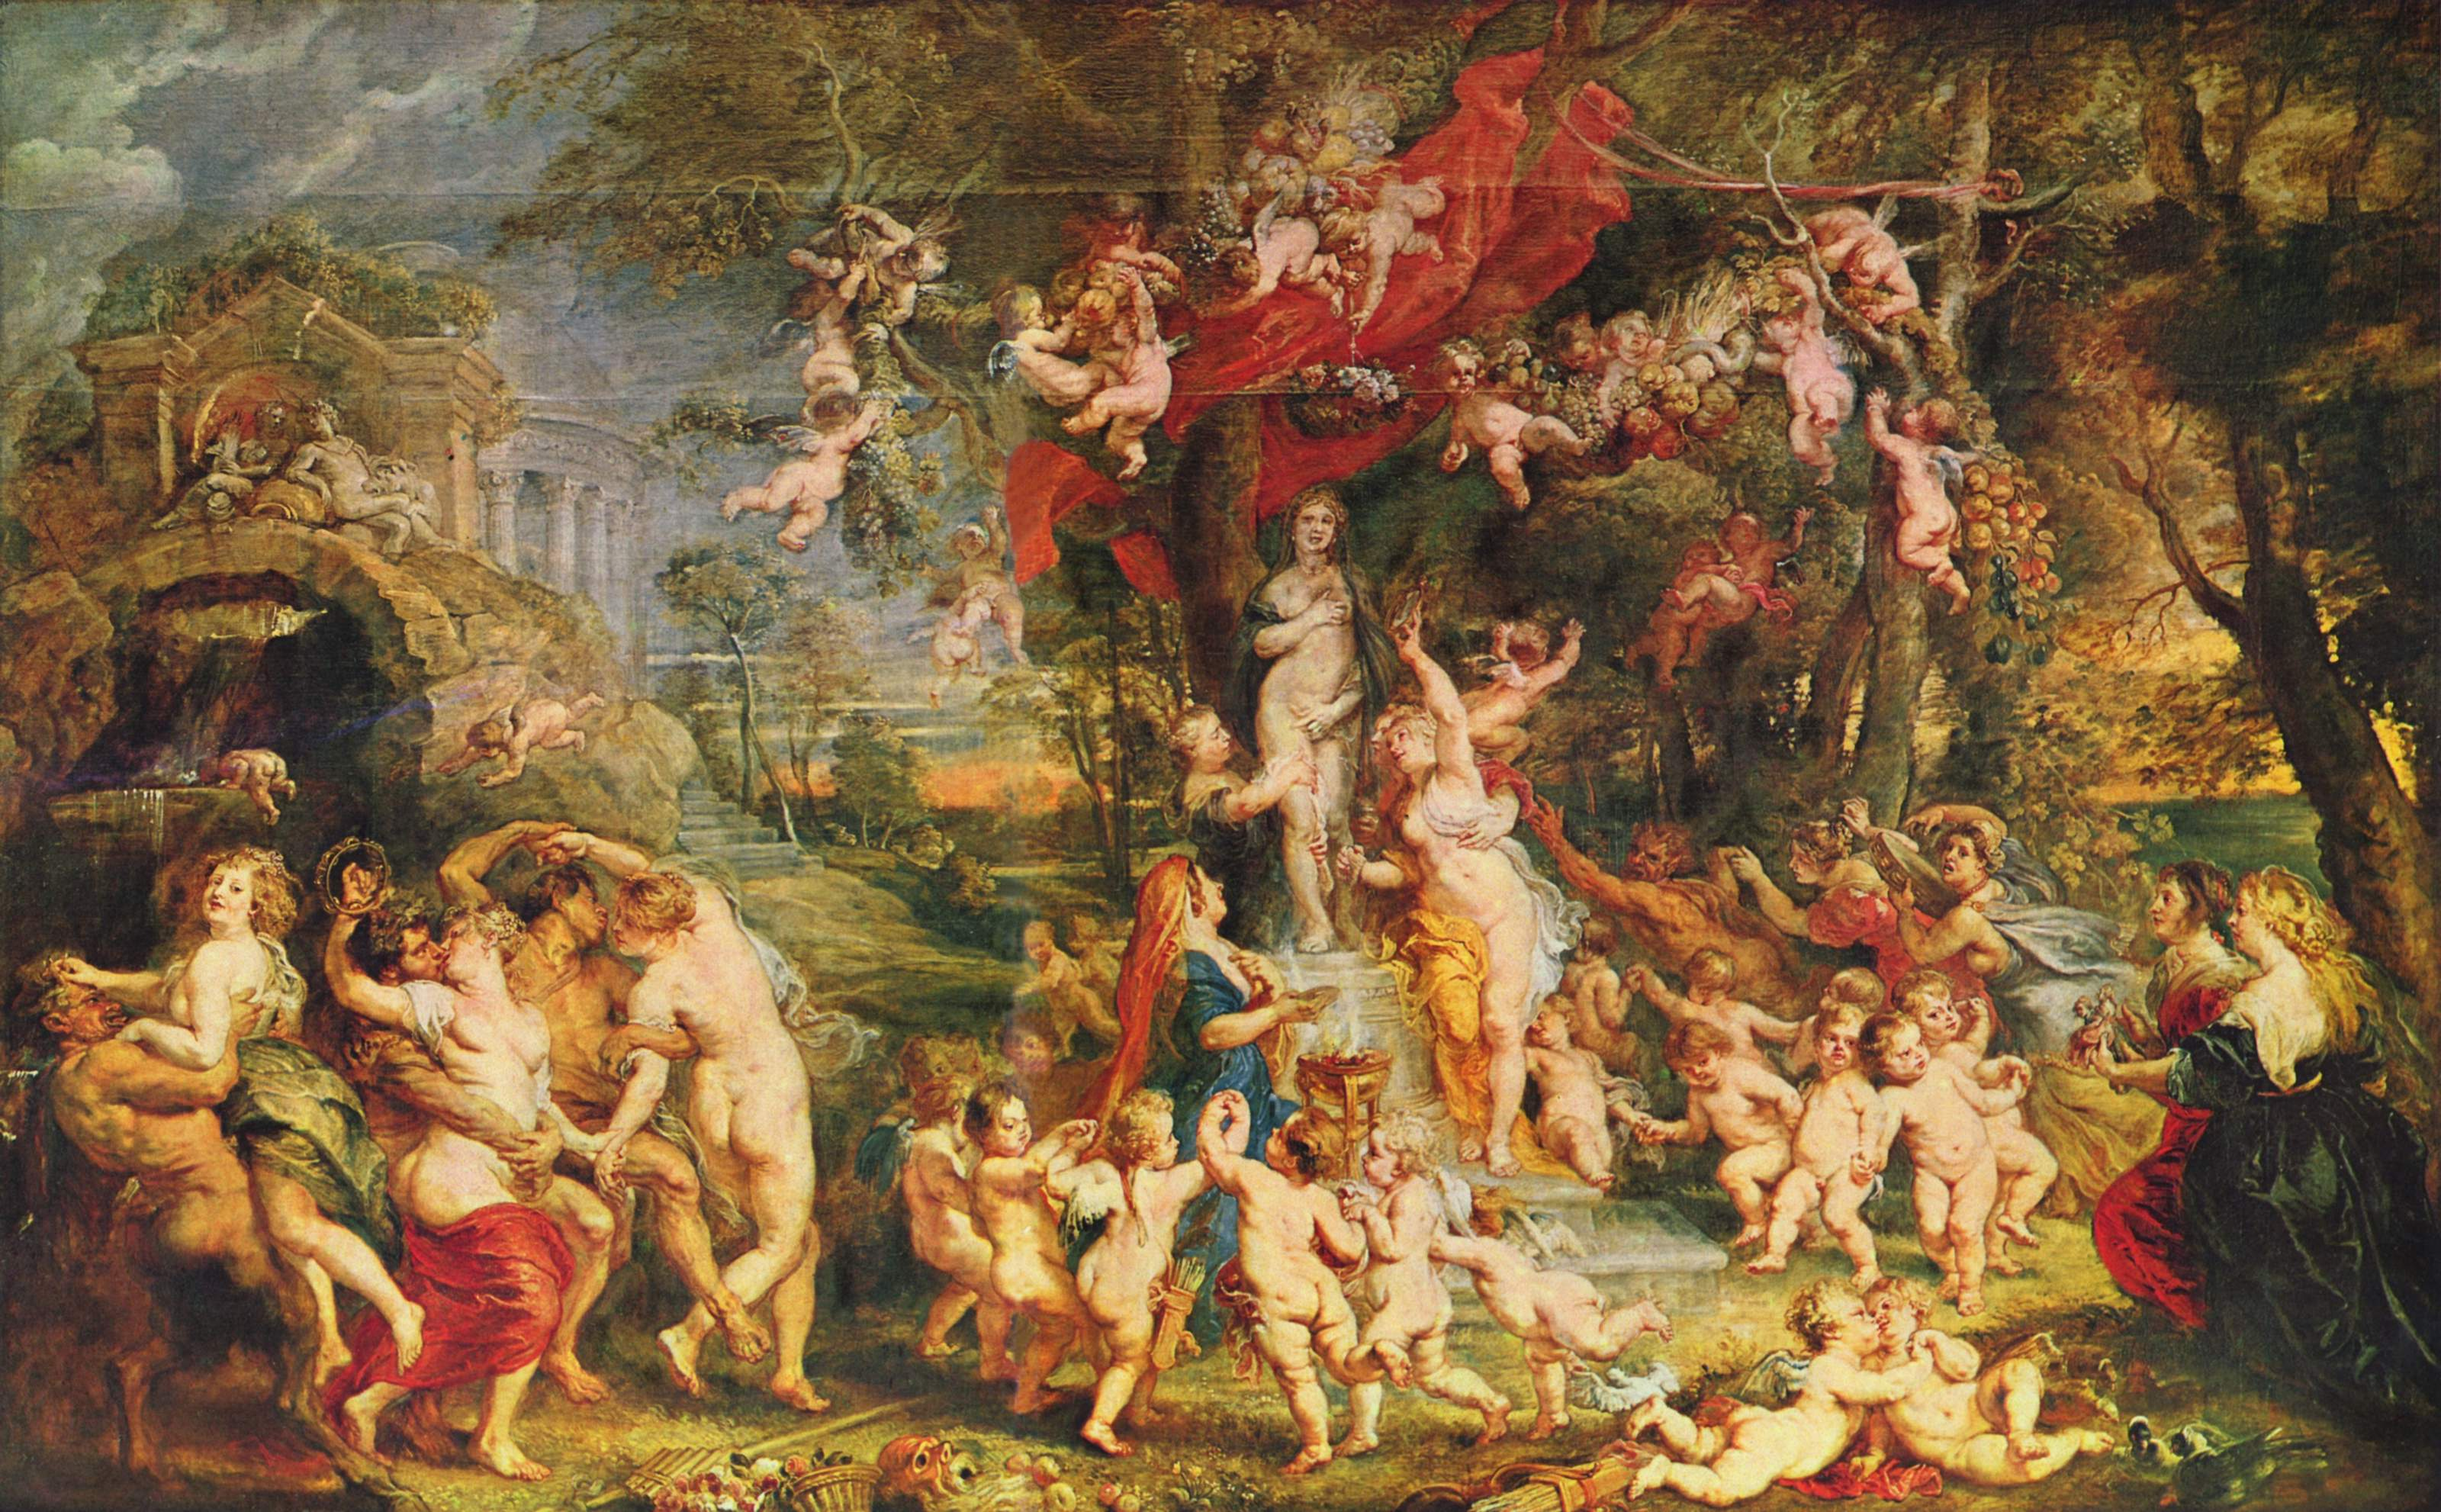 http://upload.wikimedia.org/wikipedia/commons/d/df/Peter_Paul_Rubens_117.jpg